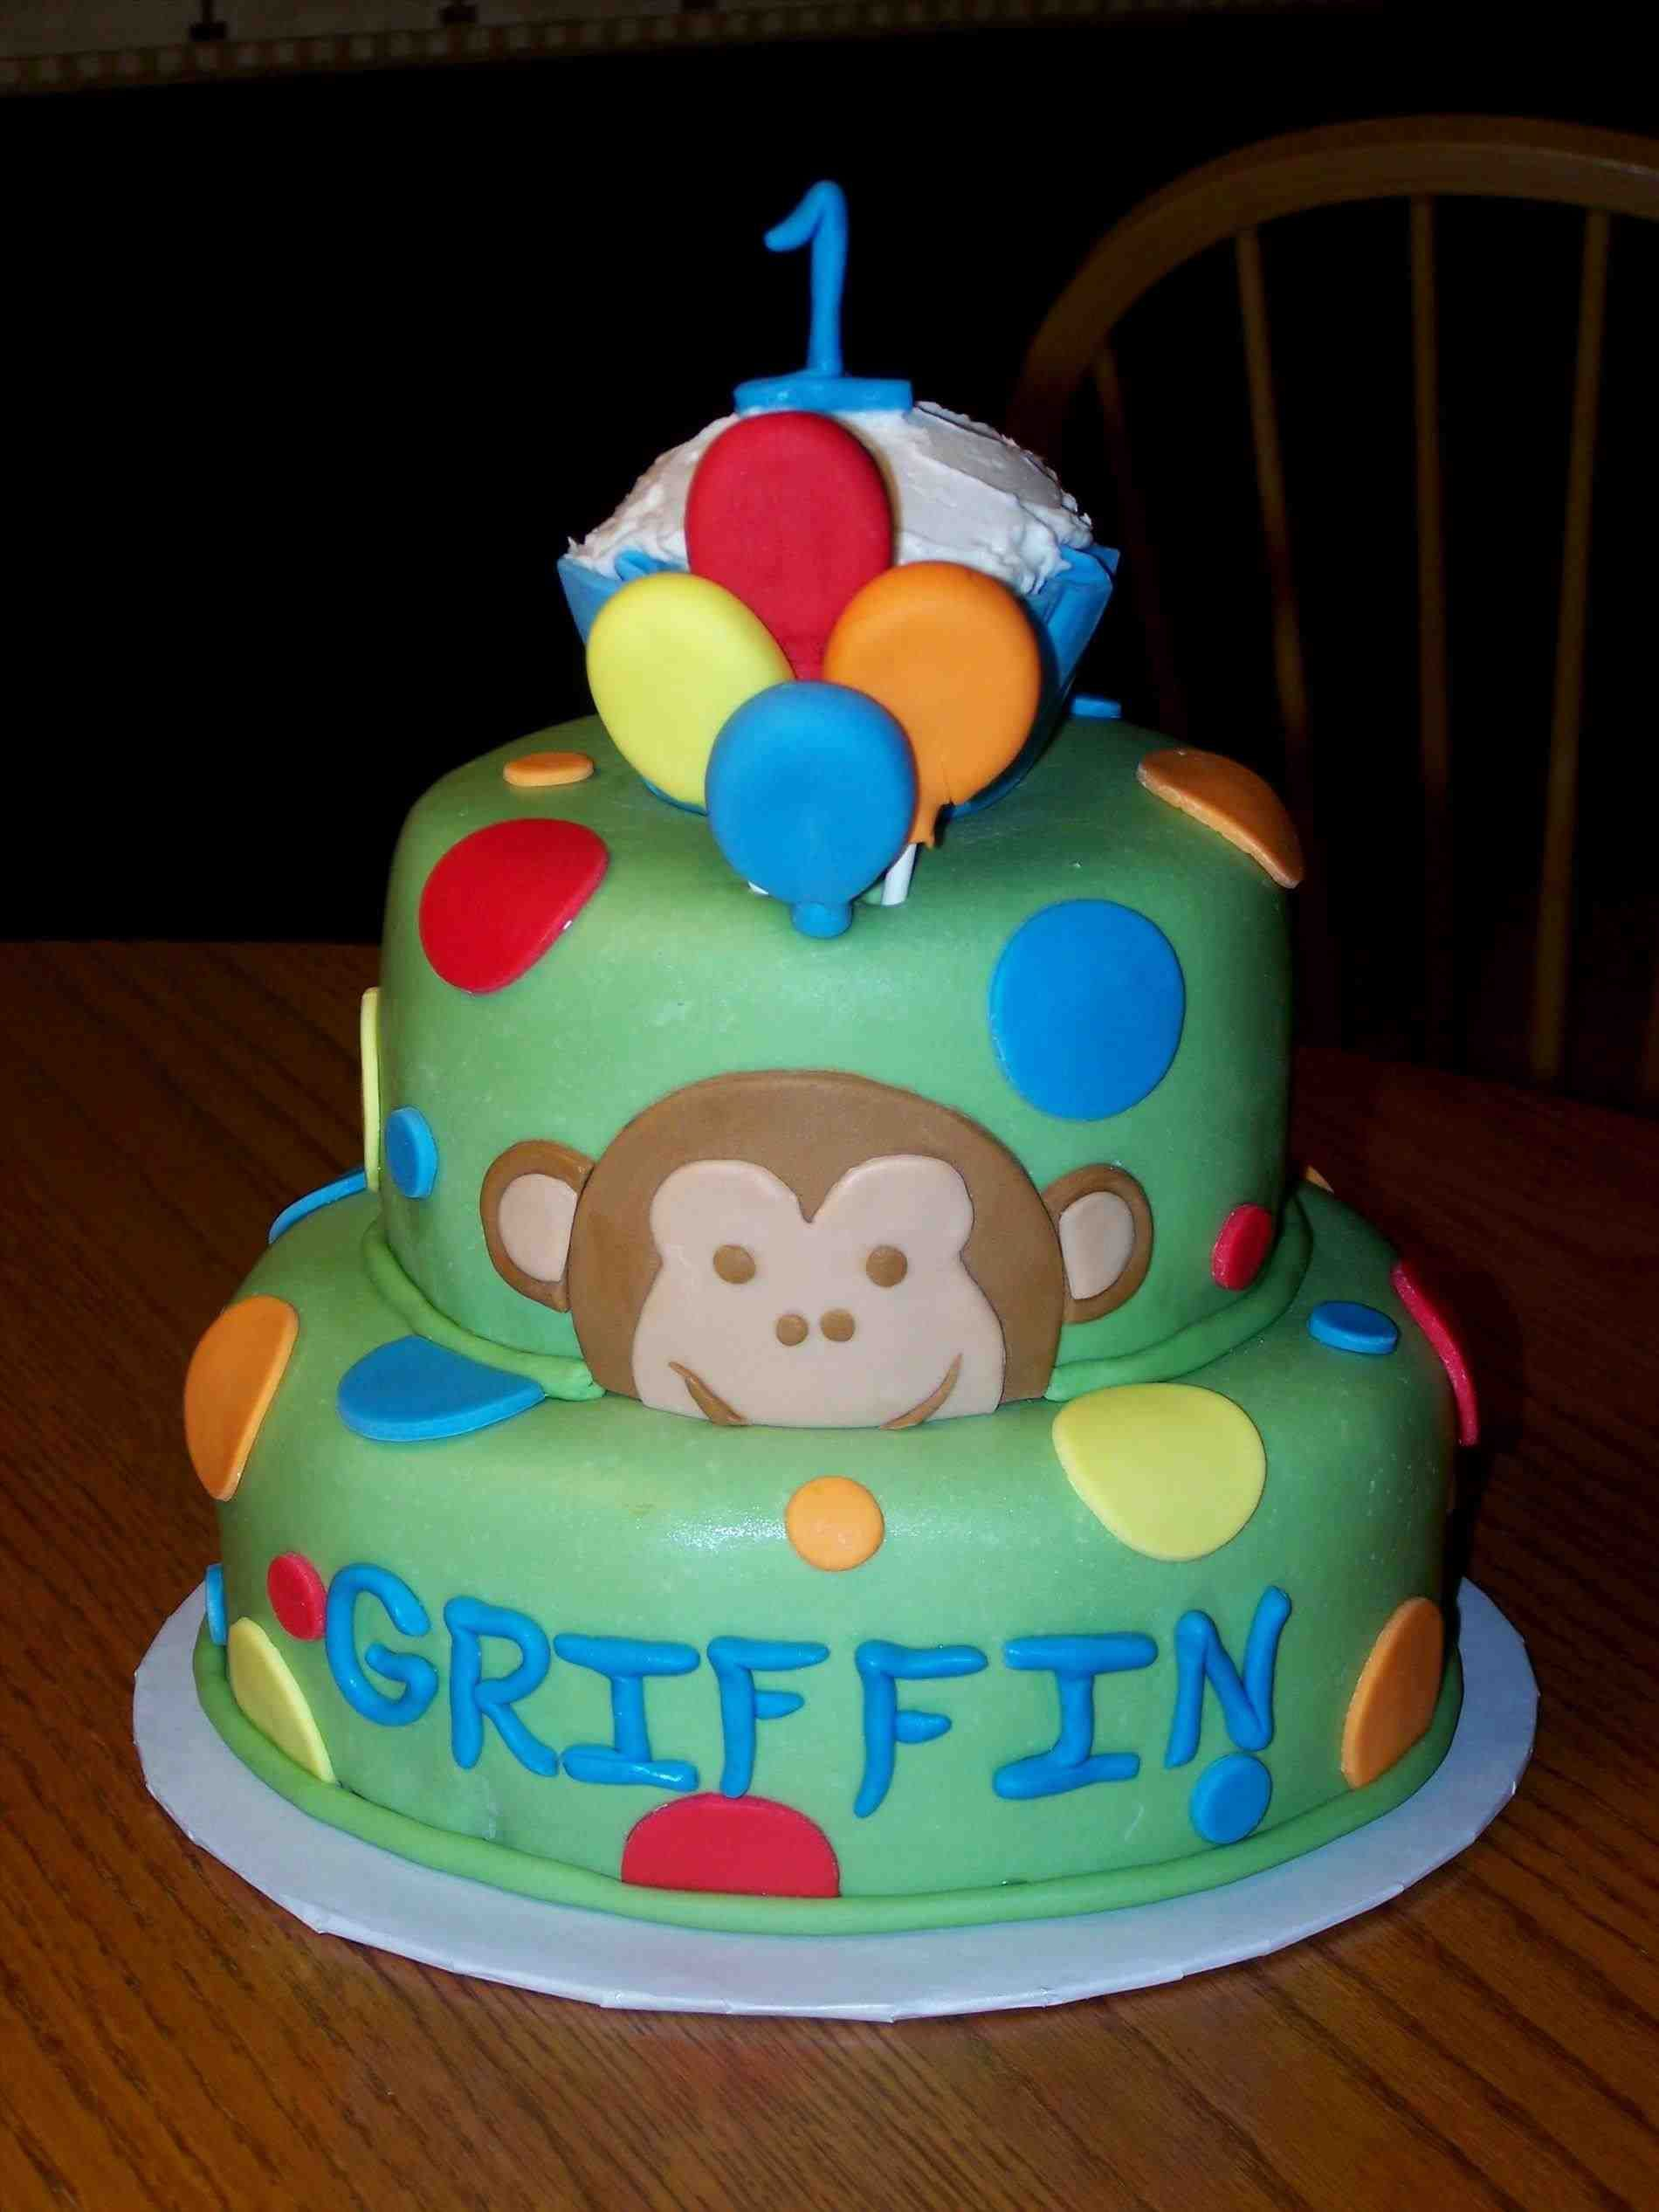 New post 1st birthday simple decoration ideas for boy has been